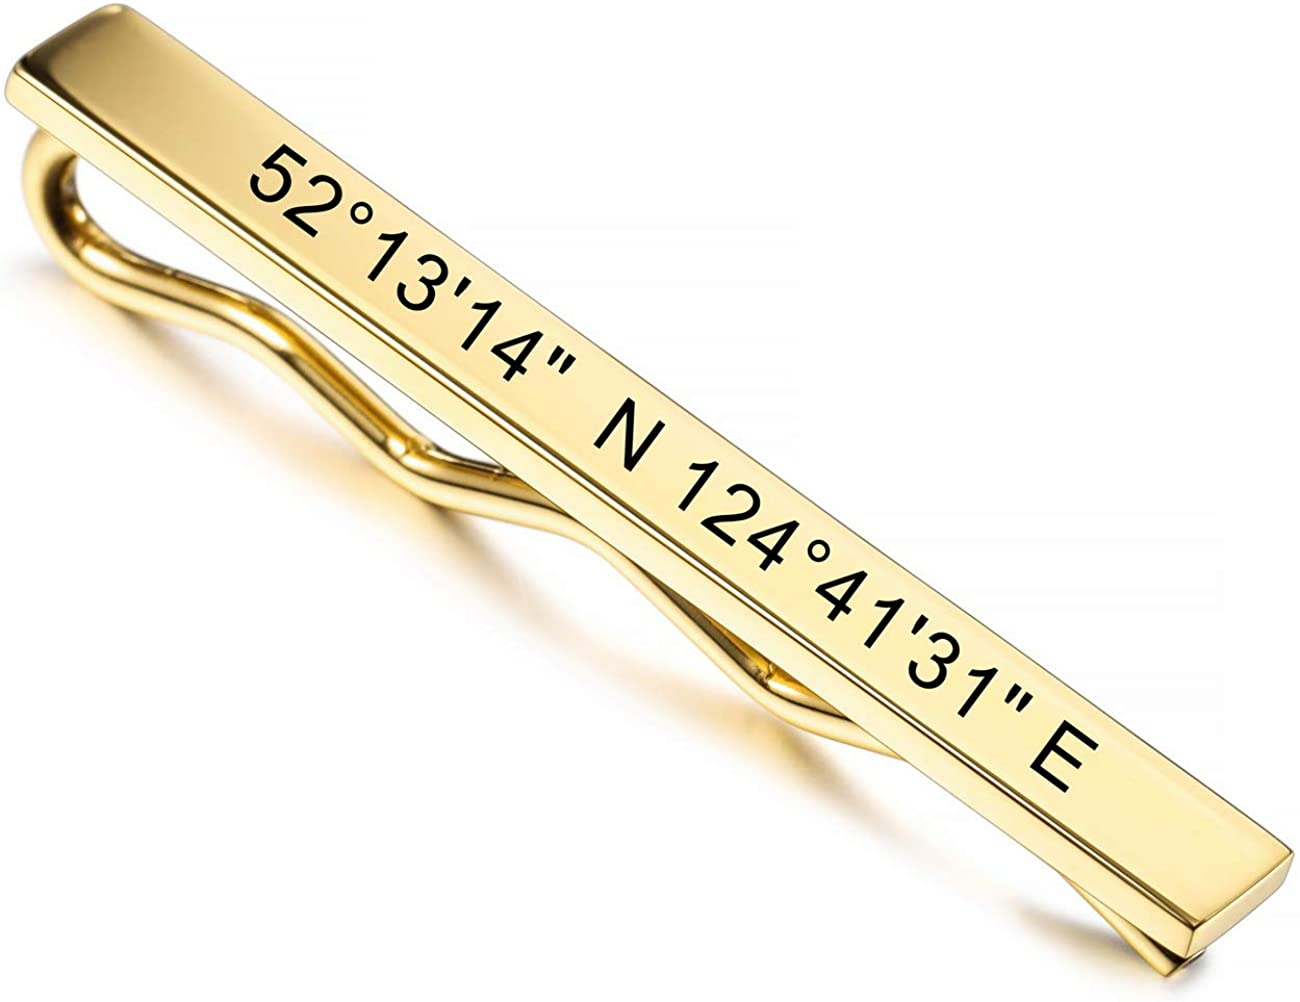 MeMeDIY Custom Tie Clip Engraving Name Date Personalized Tie Bars for Men Boys Stainless Steel Water Resistant Jewelry Wedding Anniversary Business Gift for Father Husband Groom